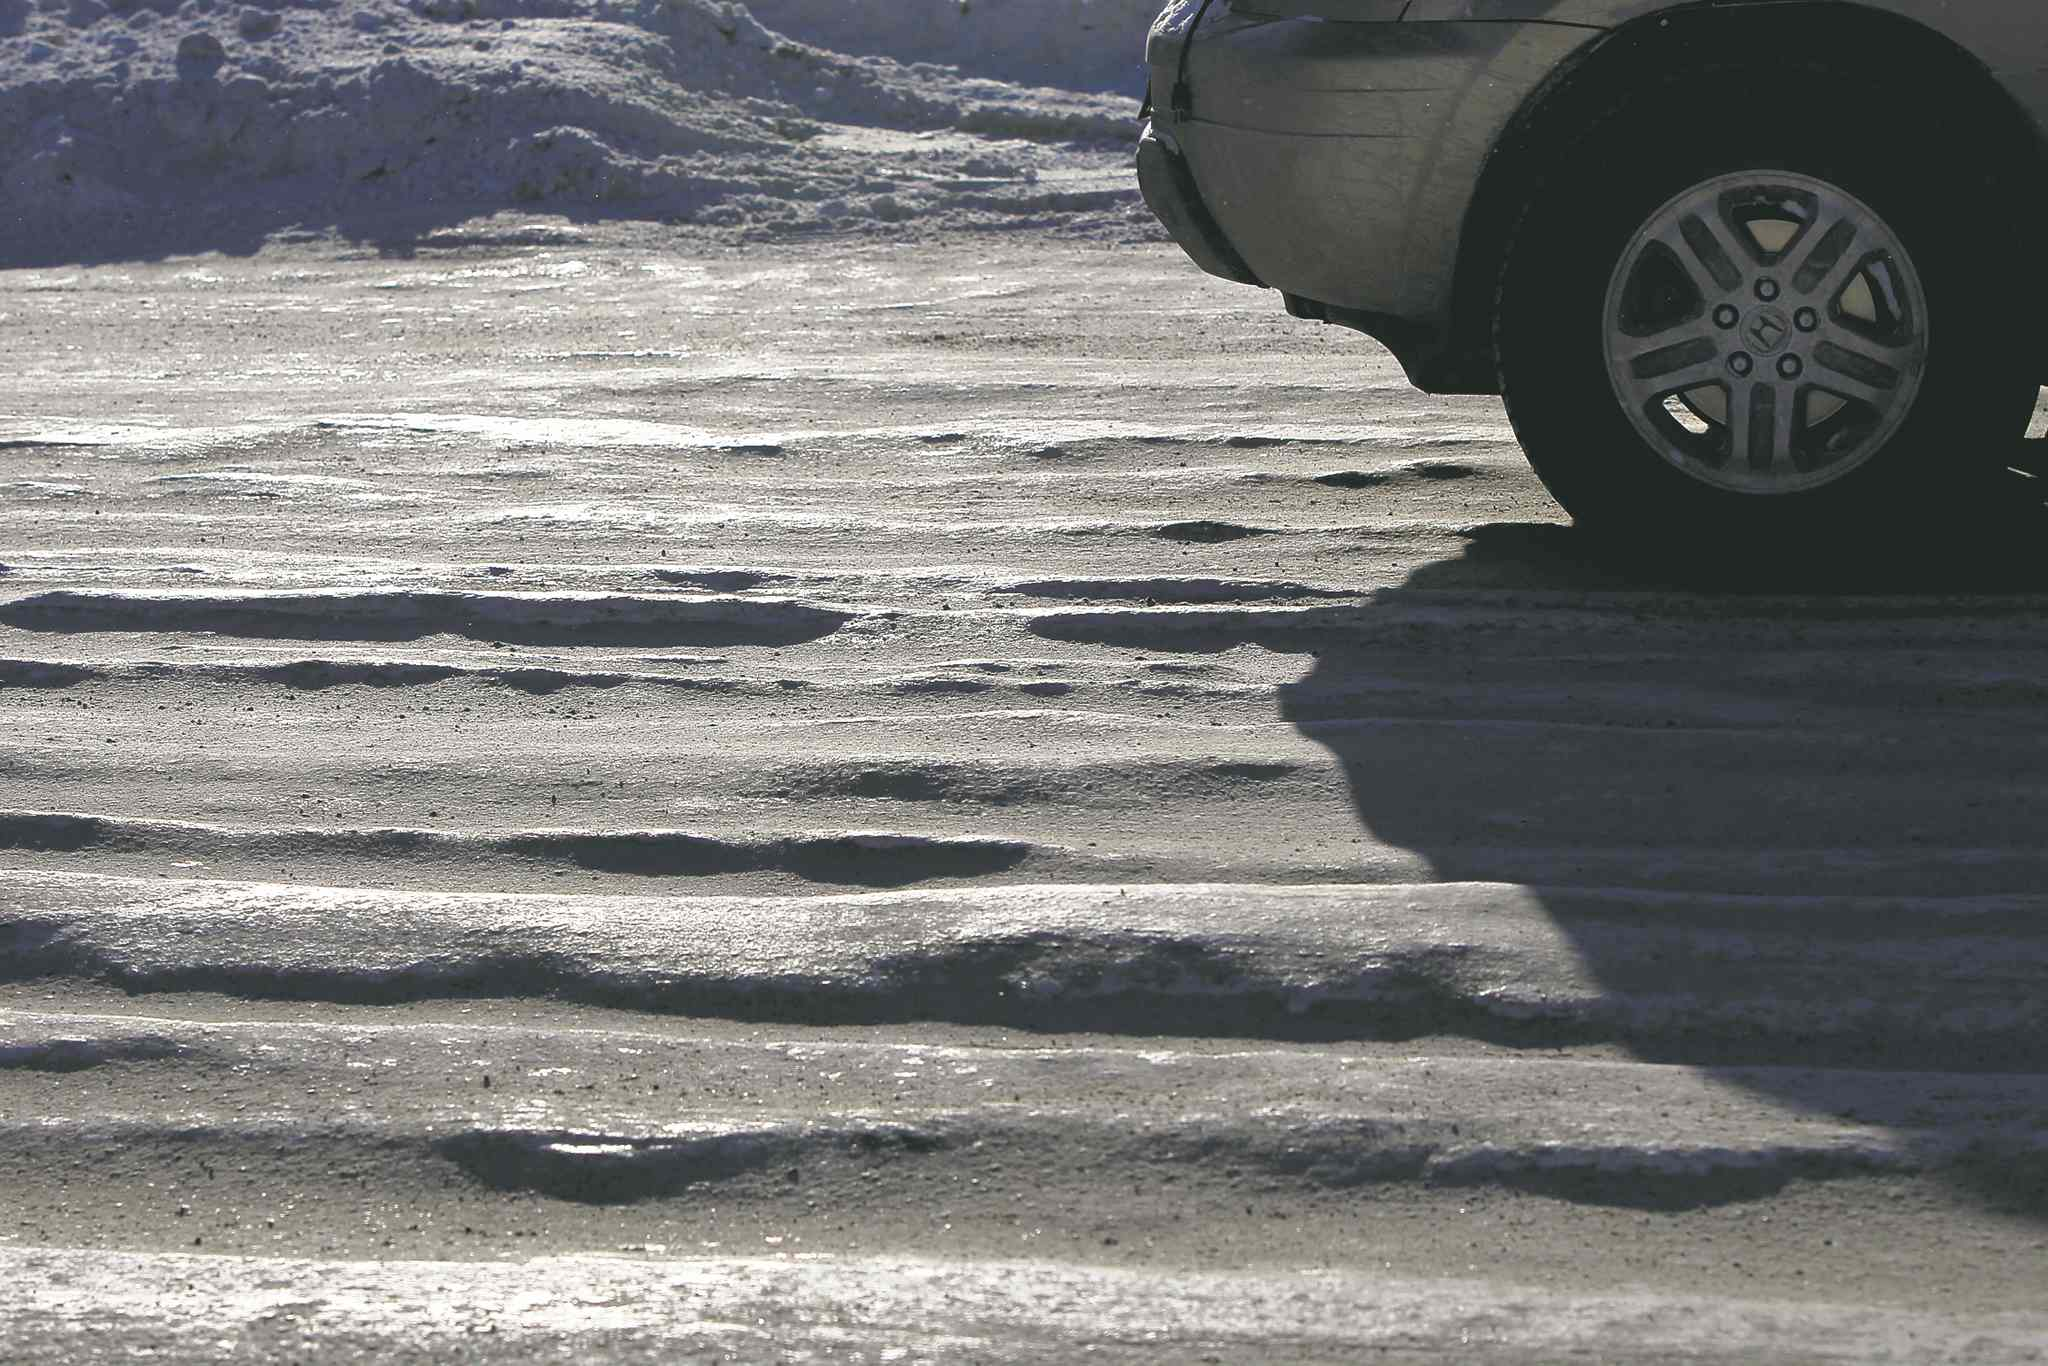 Icy, rutted patches on Logan Avenue near Route 90 Monday. The snow clearing operation that begins tonight will clear the potentially dangerous ruts which have developed throughout the city.